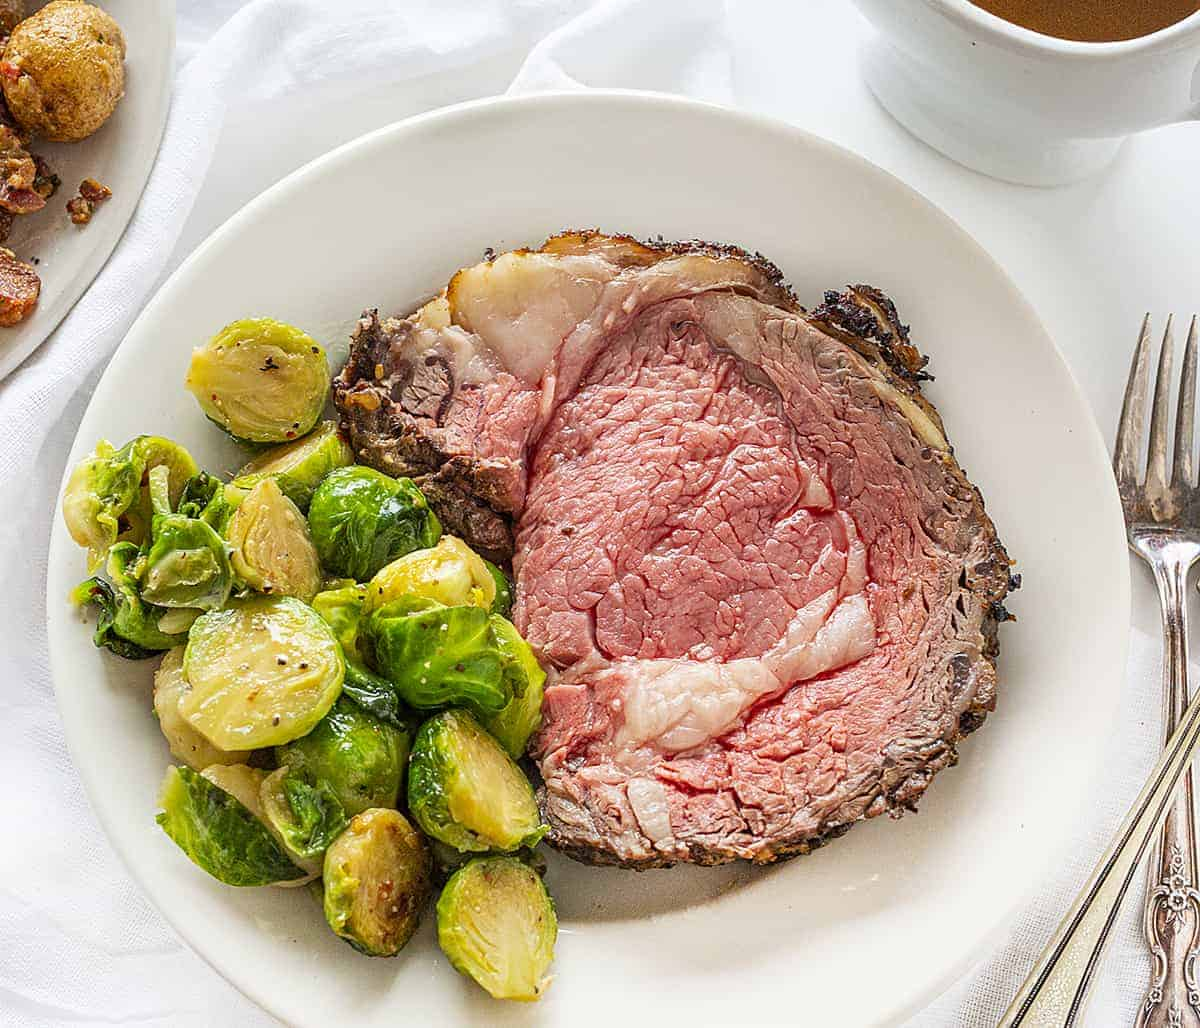 Prime Rib on a White Plate